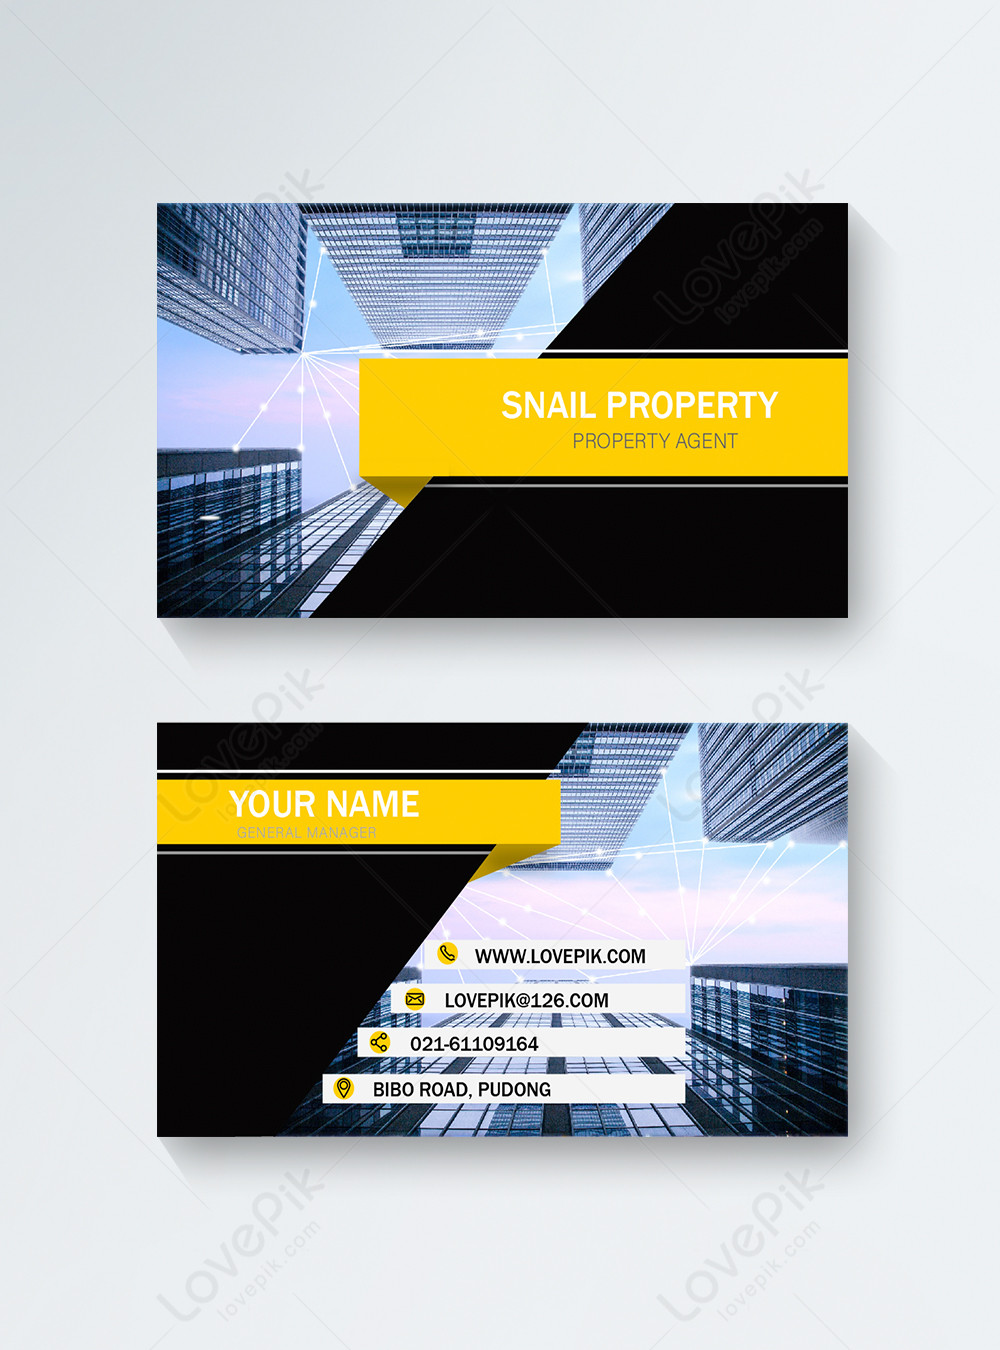 Architect business card template image_picture free download  450000389_lovepik.com